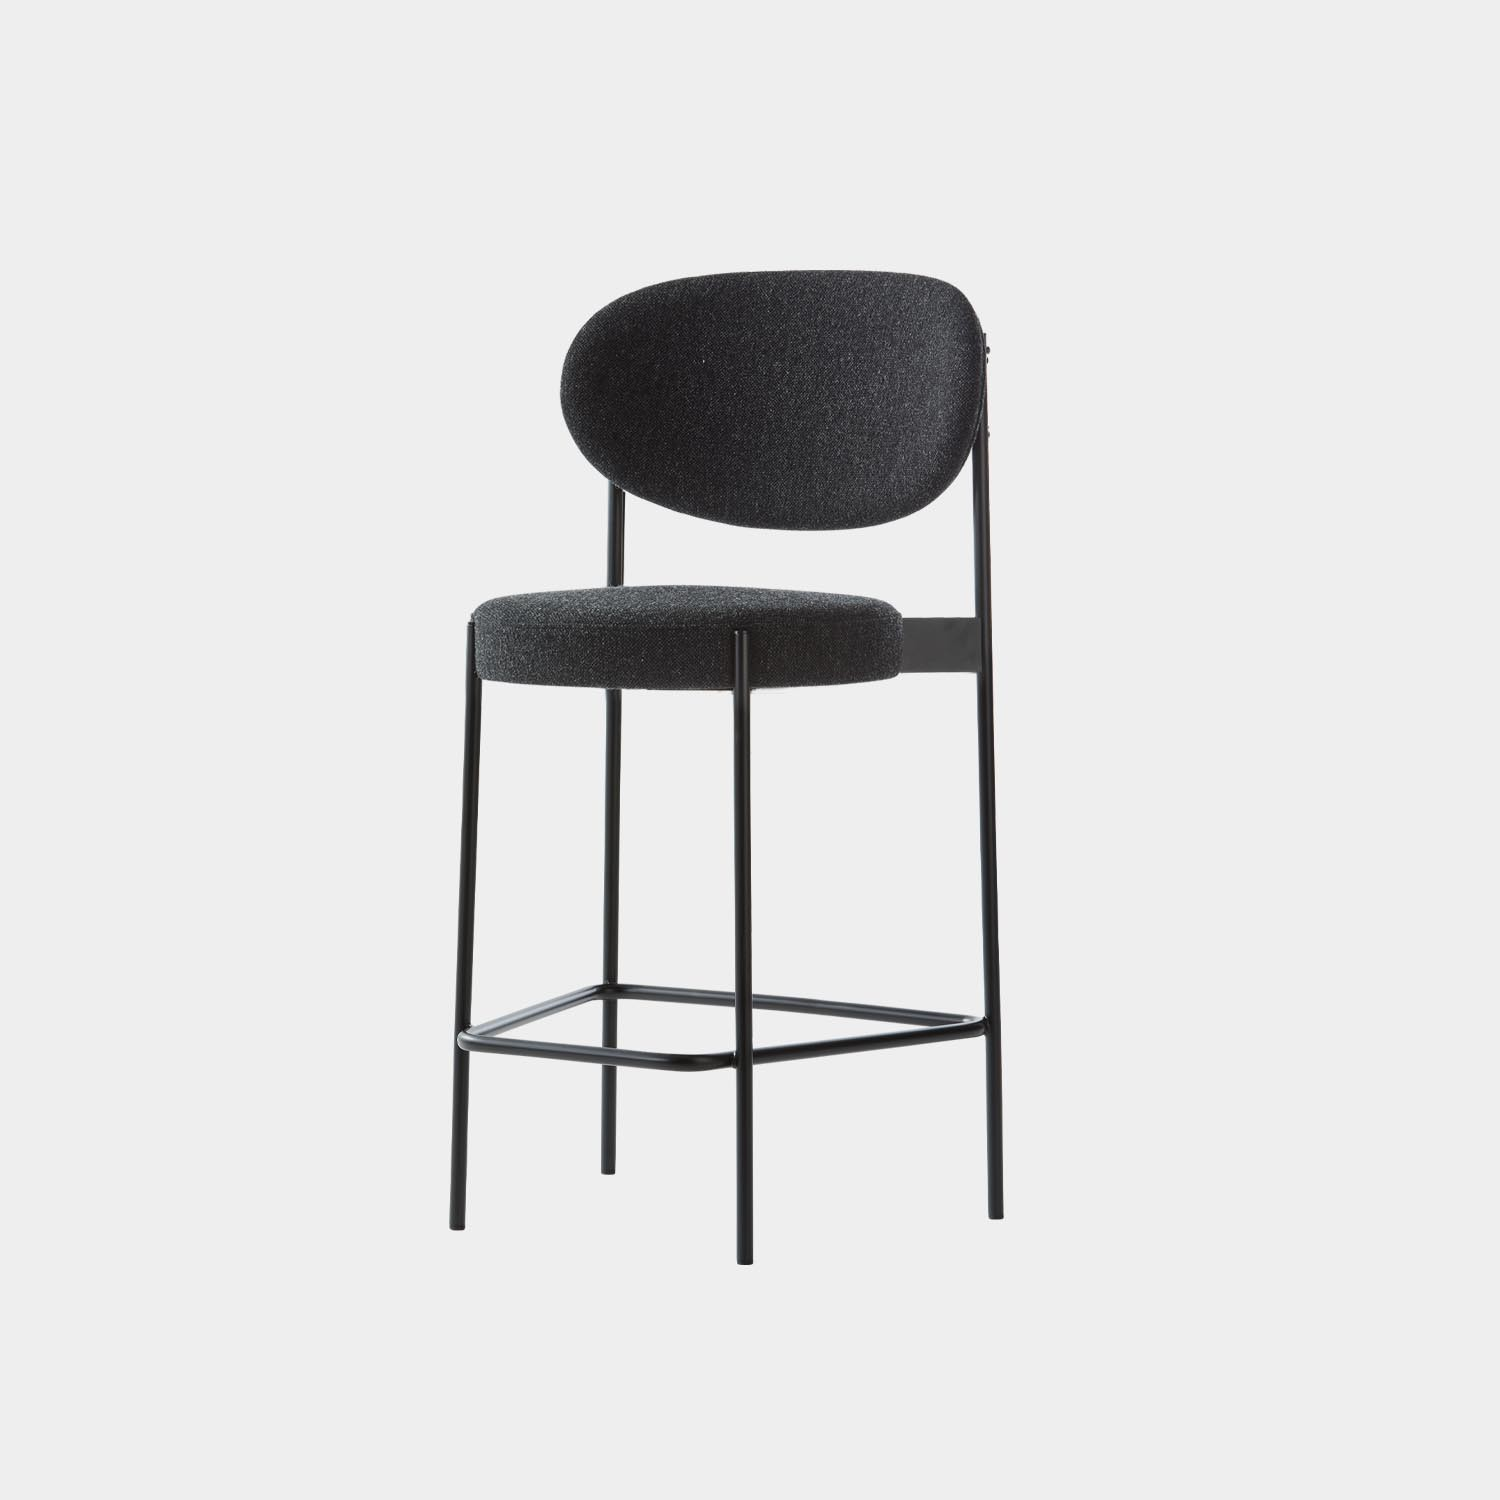 Series 430 Counter Chair, Black Frame